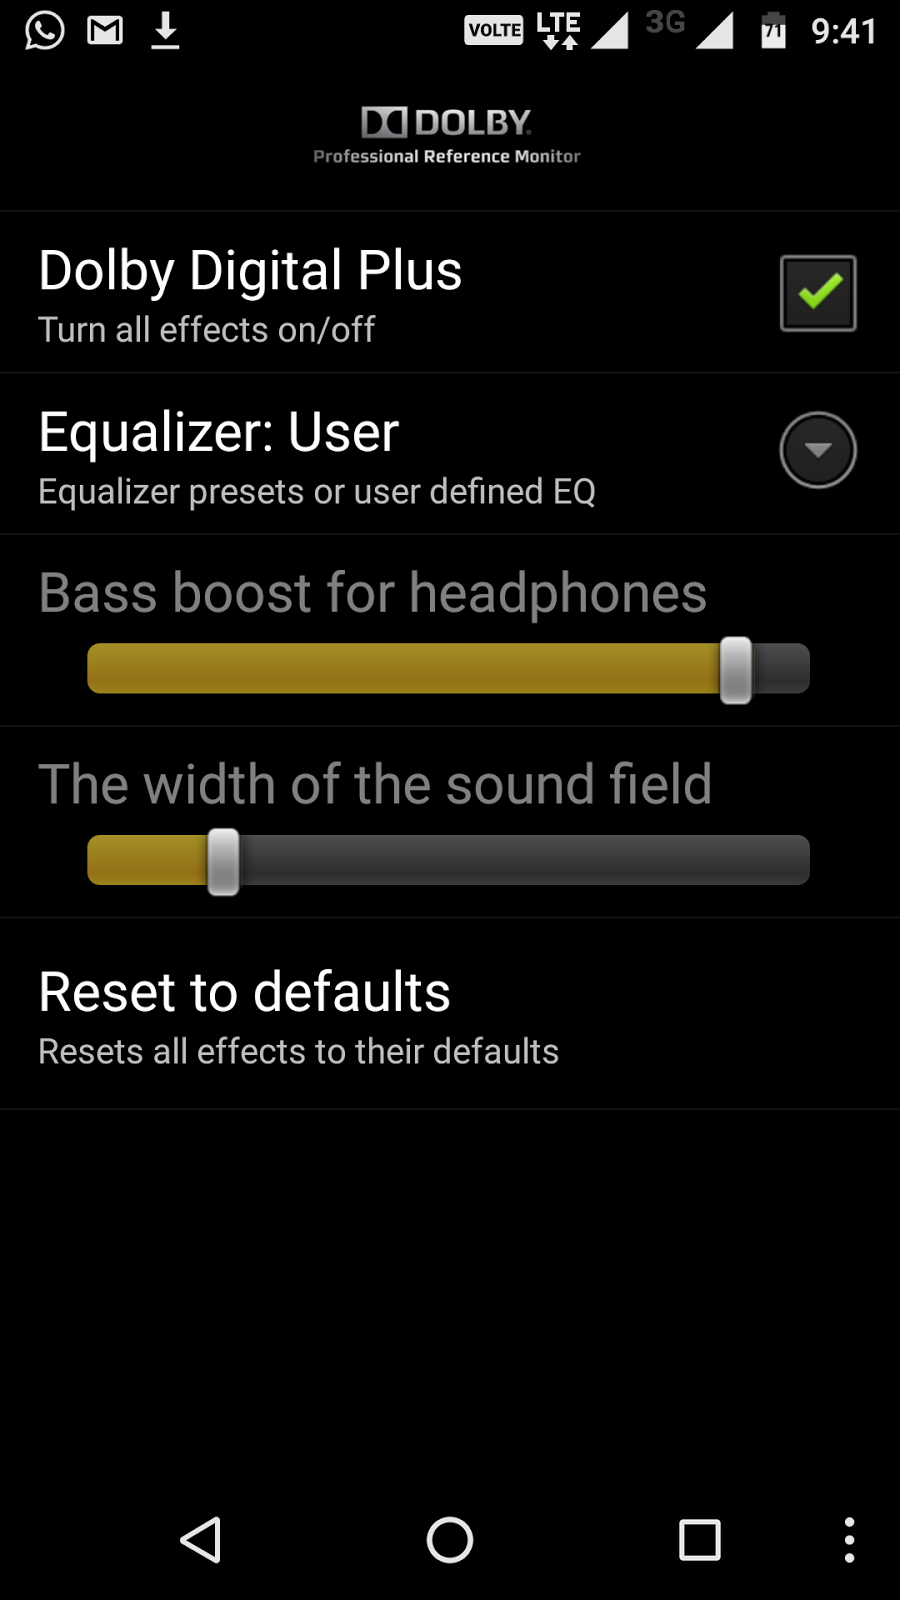 dolby digital android apk